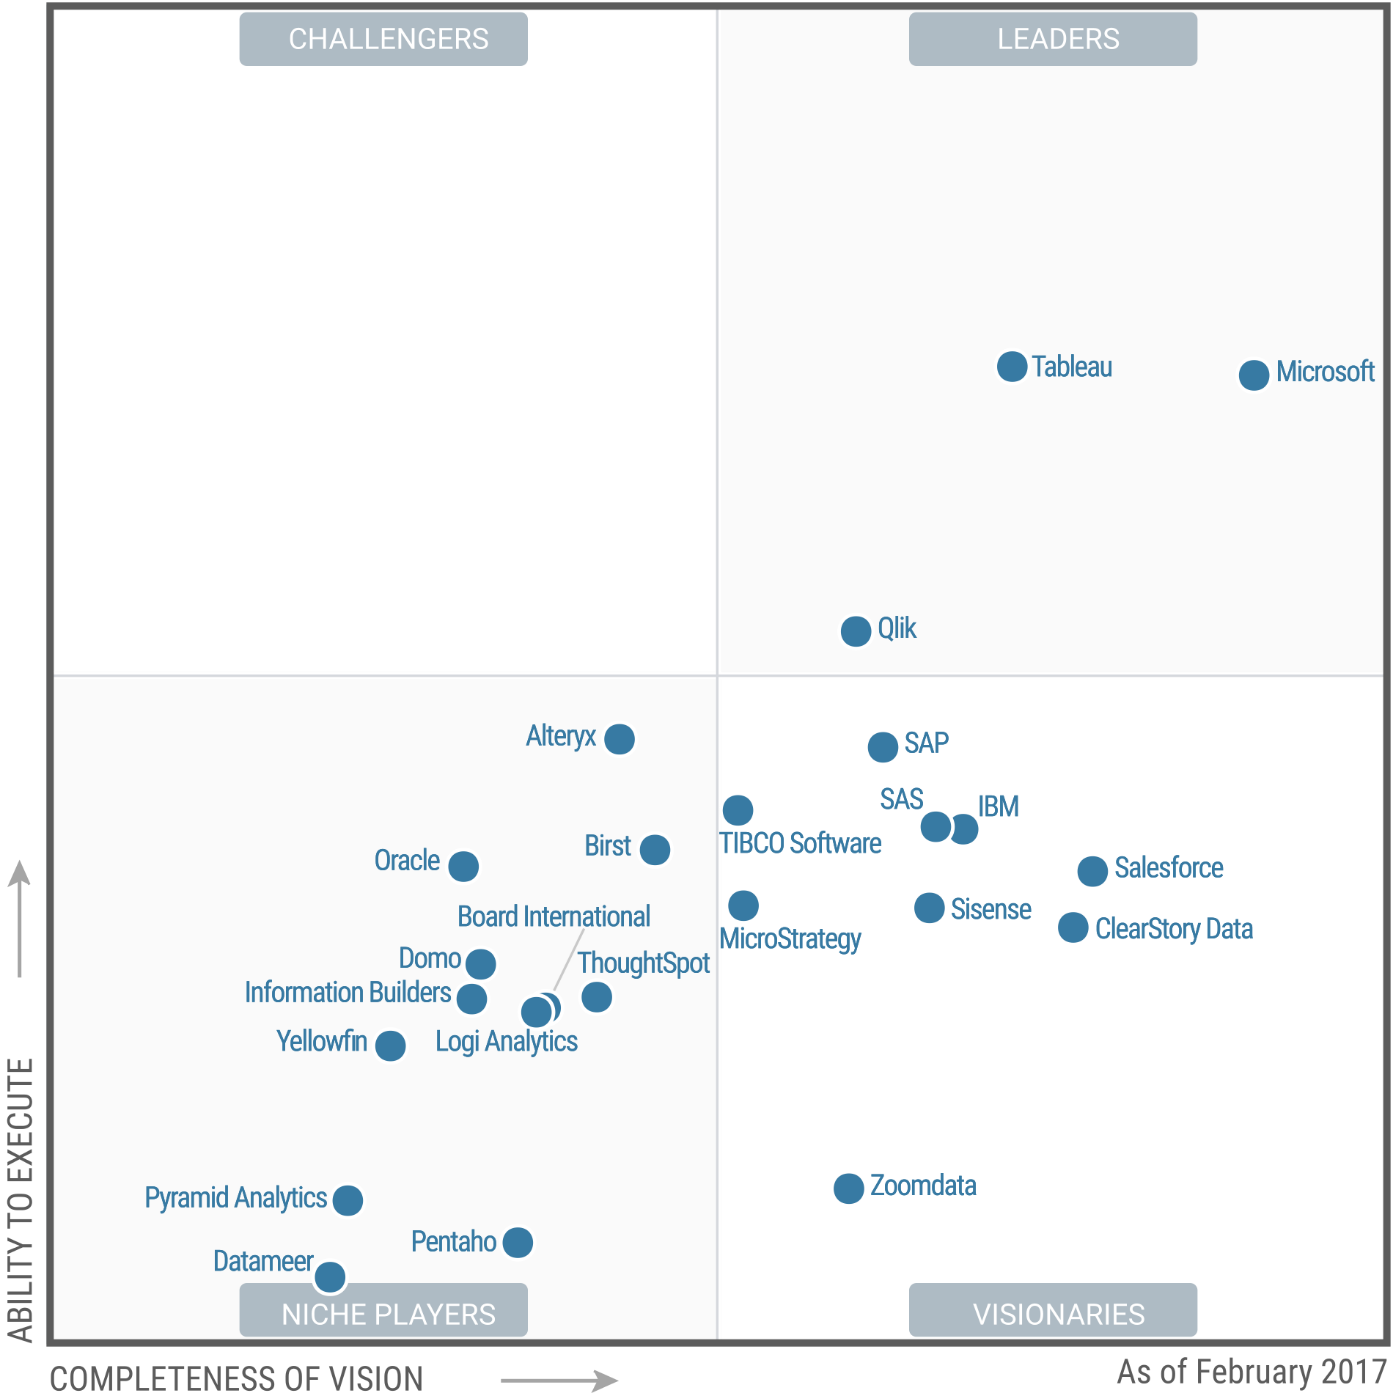 The 2017 Gartner Magic Quadrant for Business Intelligence and Analytics